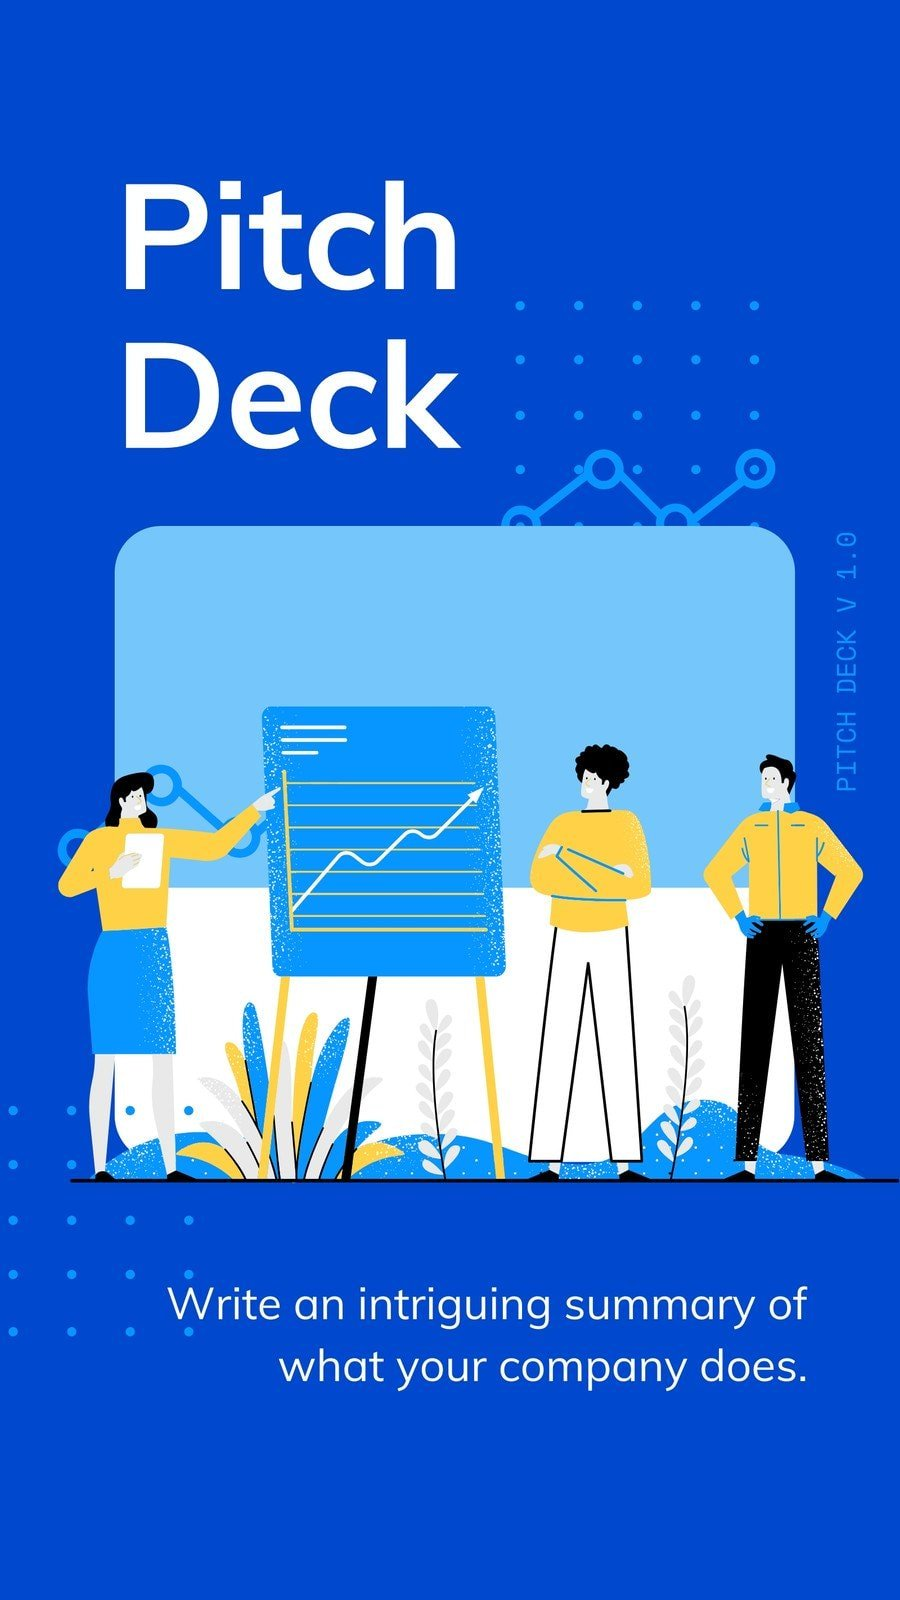 Blue and White Illustrative Technology Startup Pitch Deck Mobile First Presentation